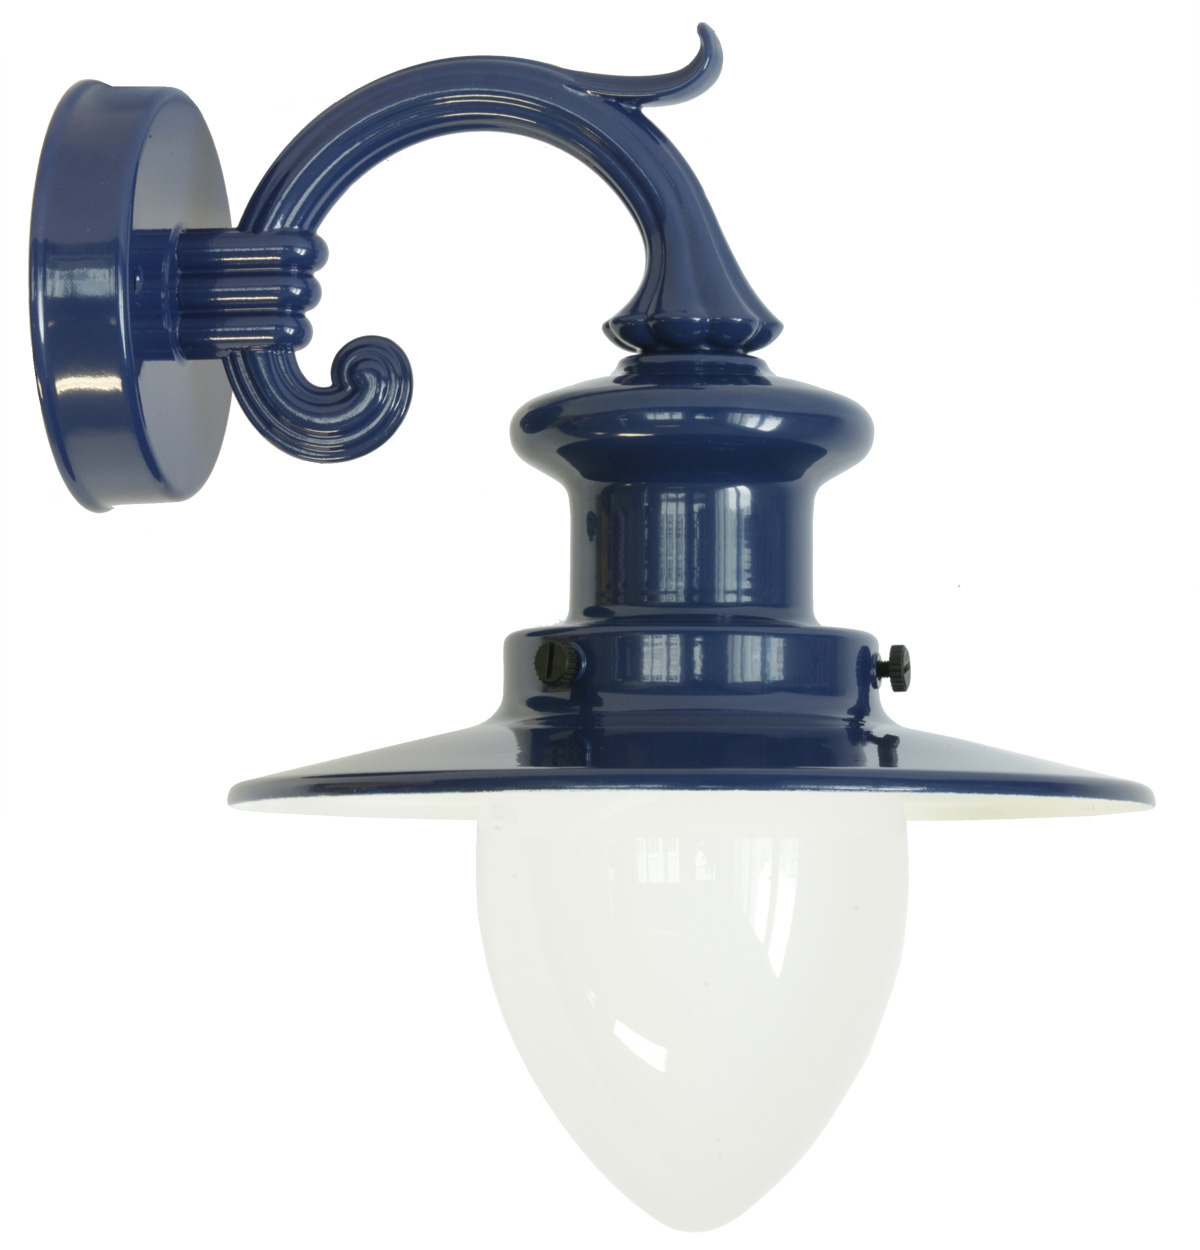 Kleine Wandlampe Small Factory-style Wall Lamp For Outdoor Use With Pointed Cylinder Glass - Terra Lumi